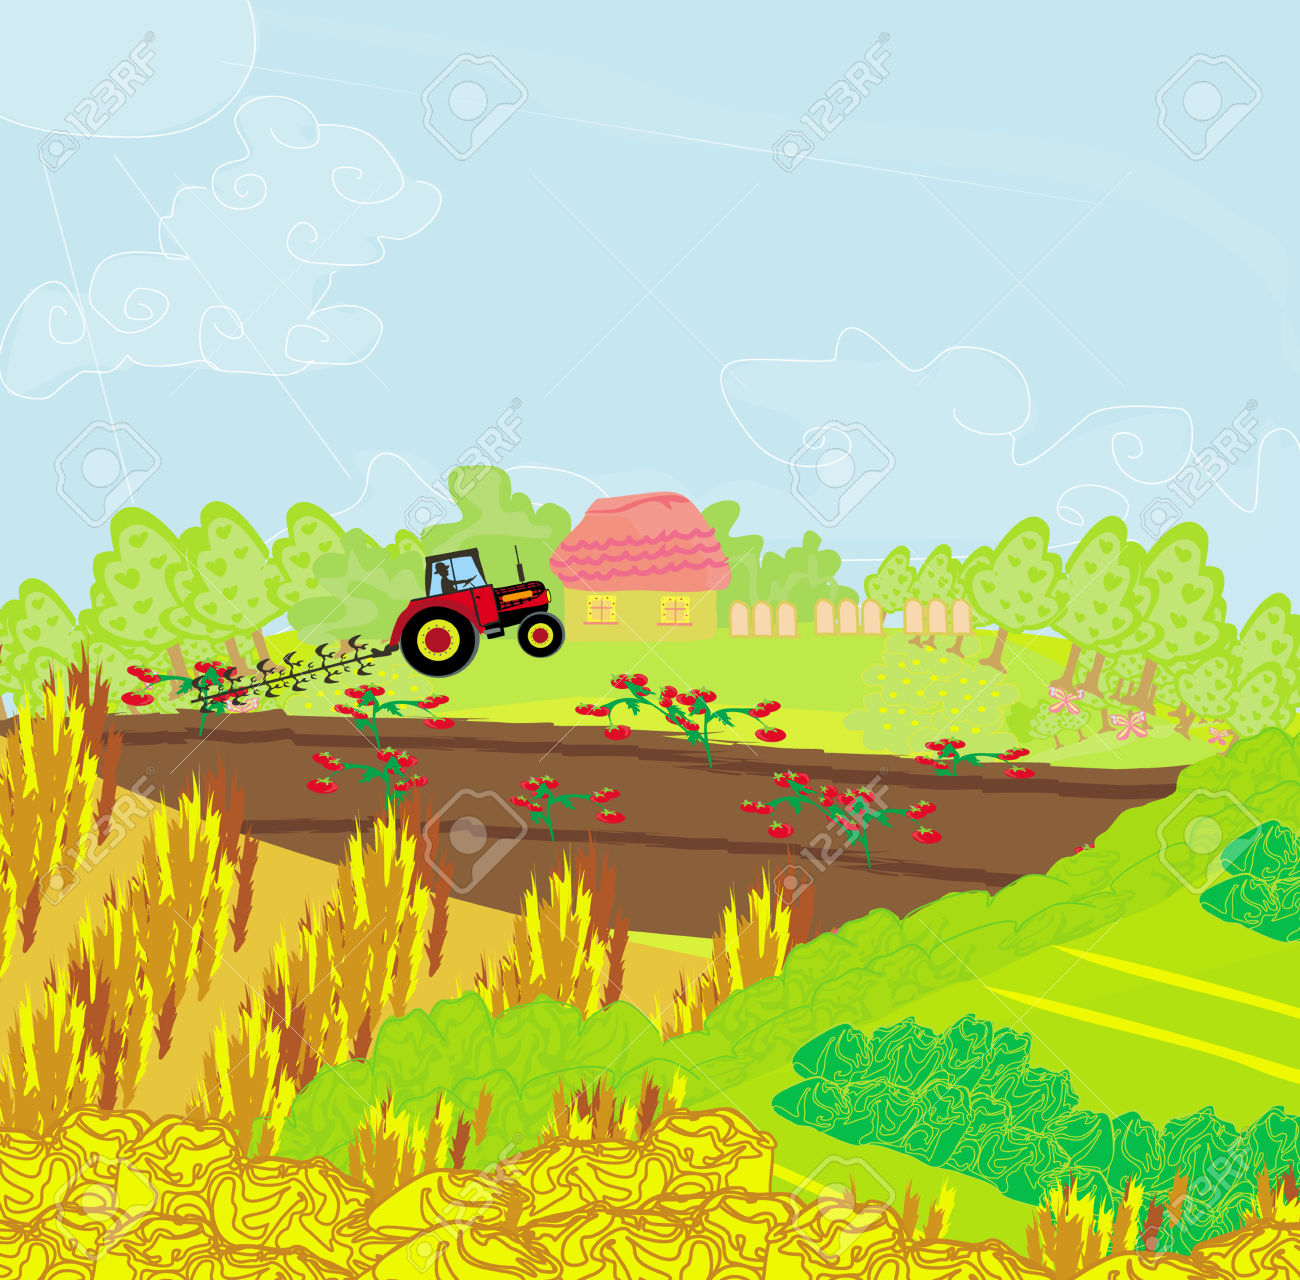 Tractor in Field Clipart (64+).